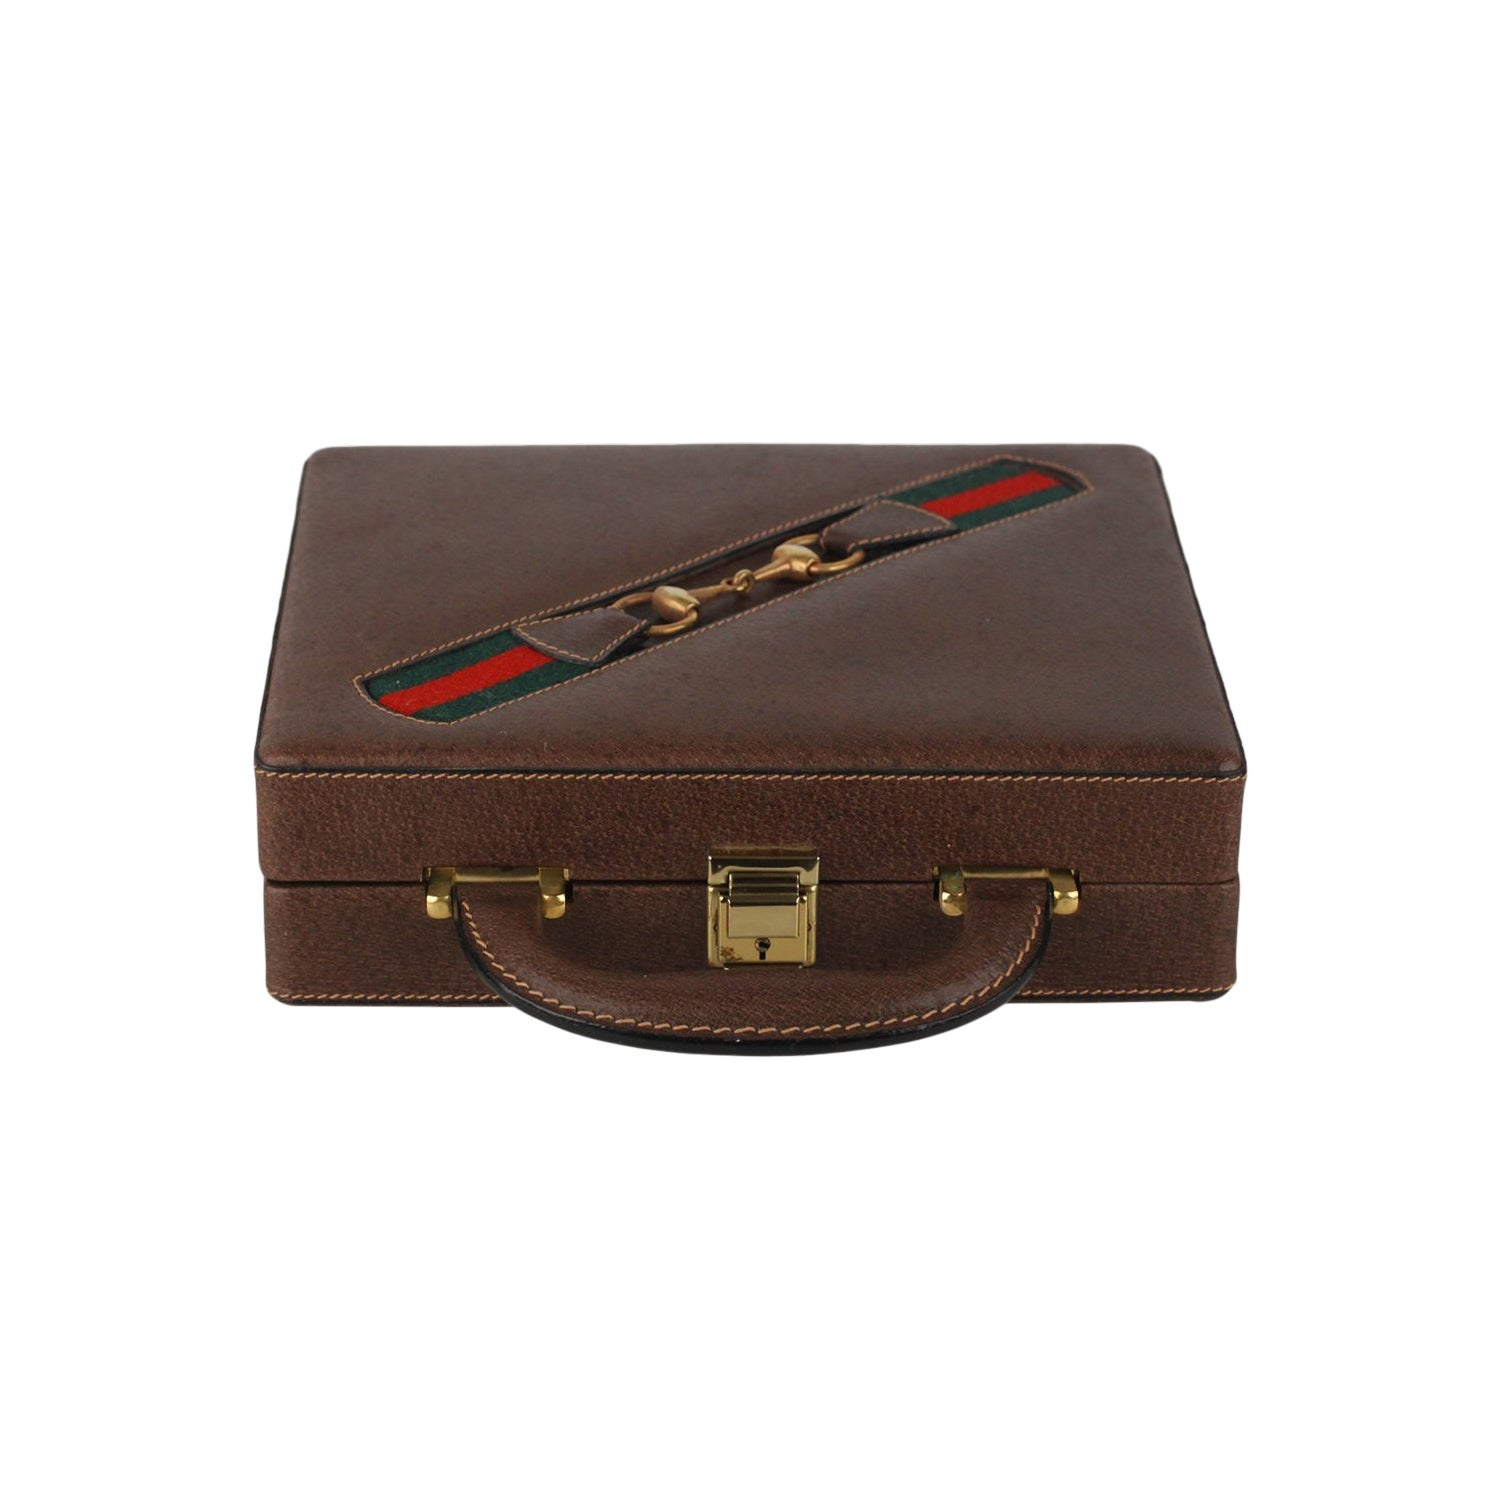 a46046006 Gucci Vintage Tan Leather Gaming Box Poker Set 2 Playing Cards Chips For  Sale at 1stdibs